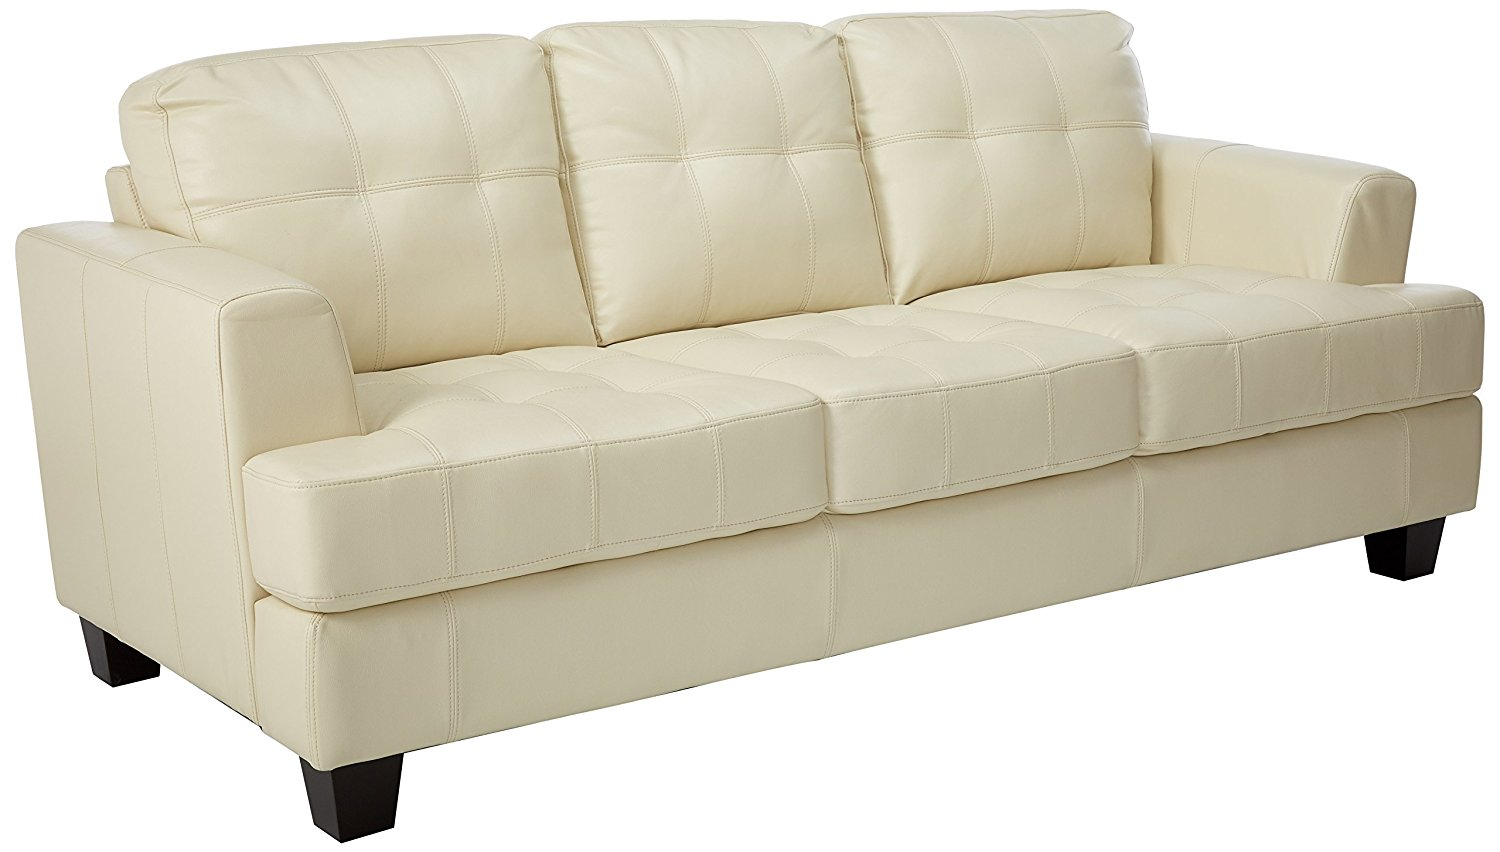 Coaster Home Furnishings is a great couch brand which offers thousands of sofas in variety of styles and prices.